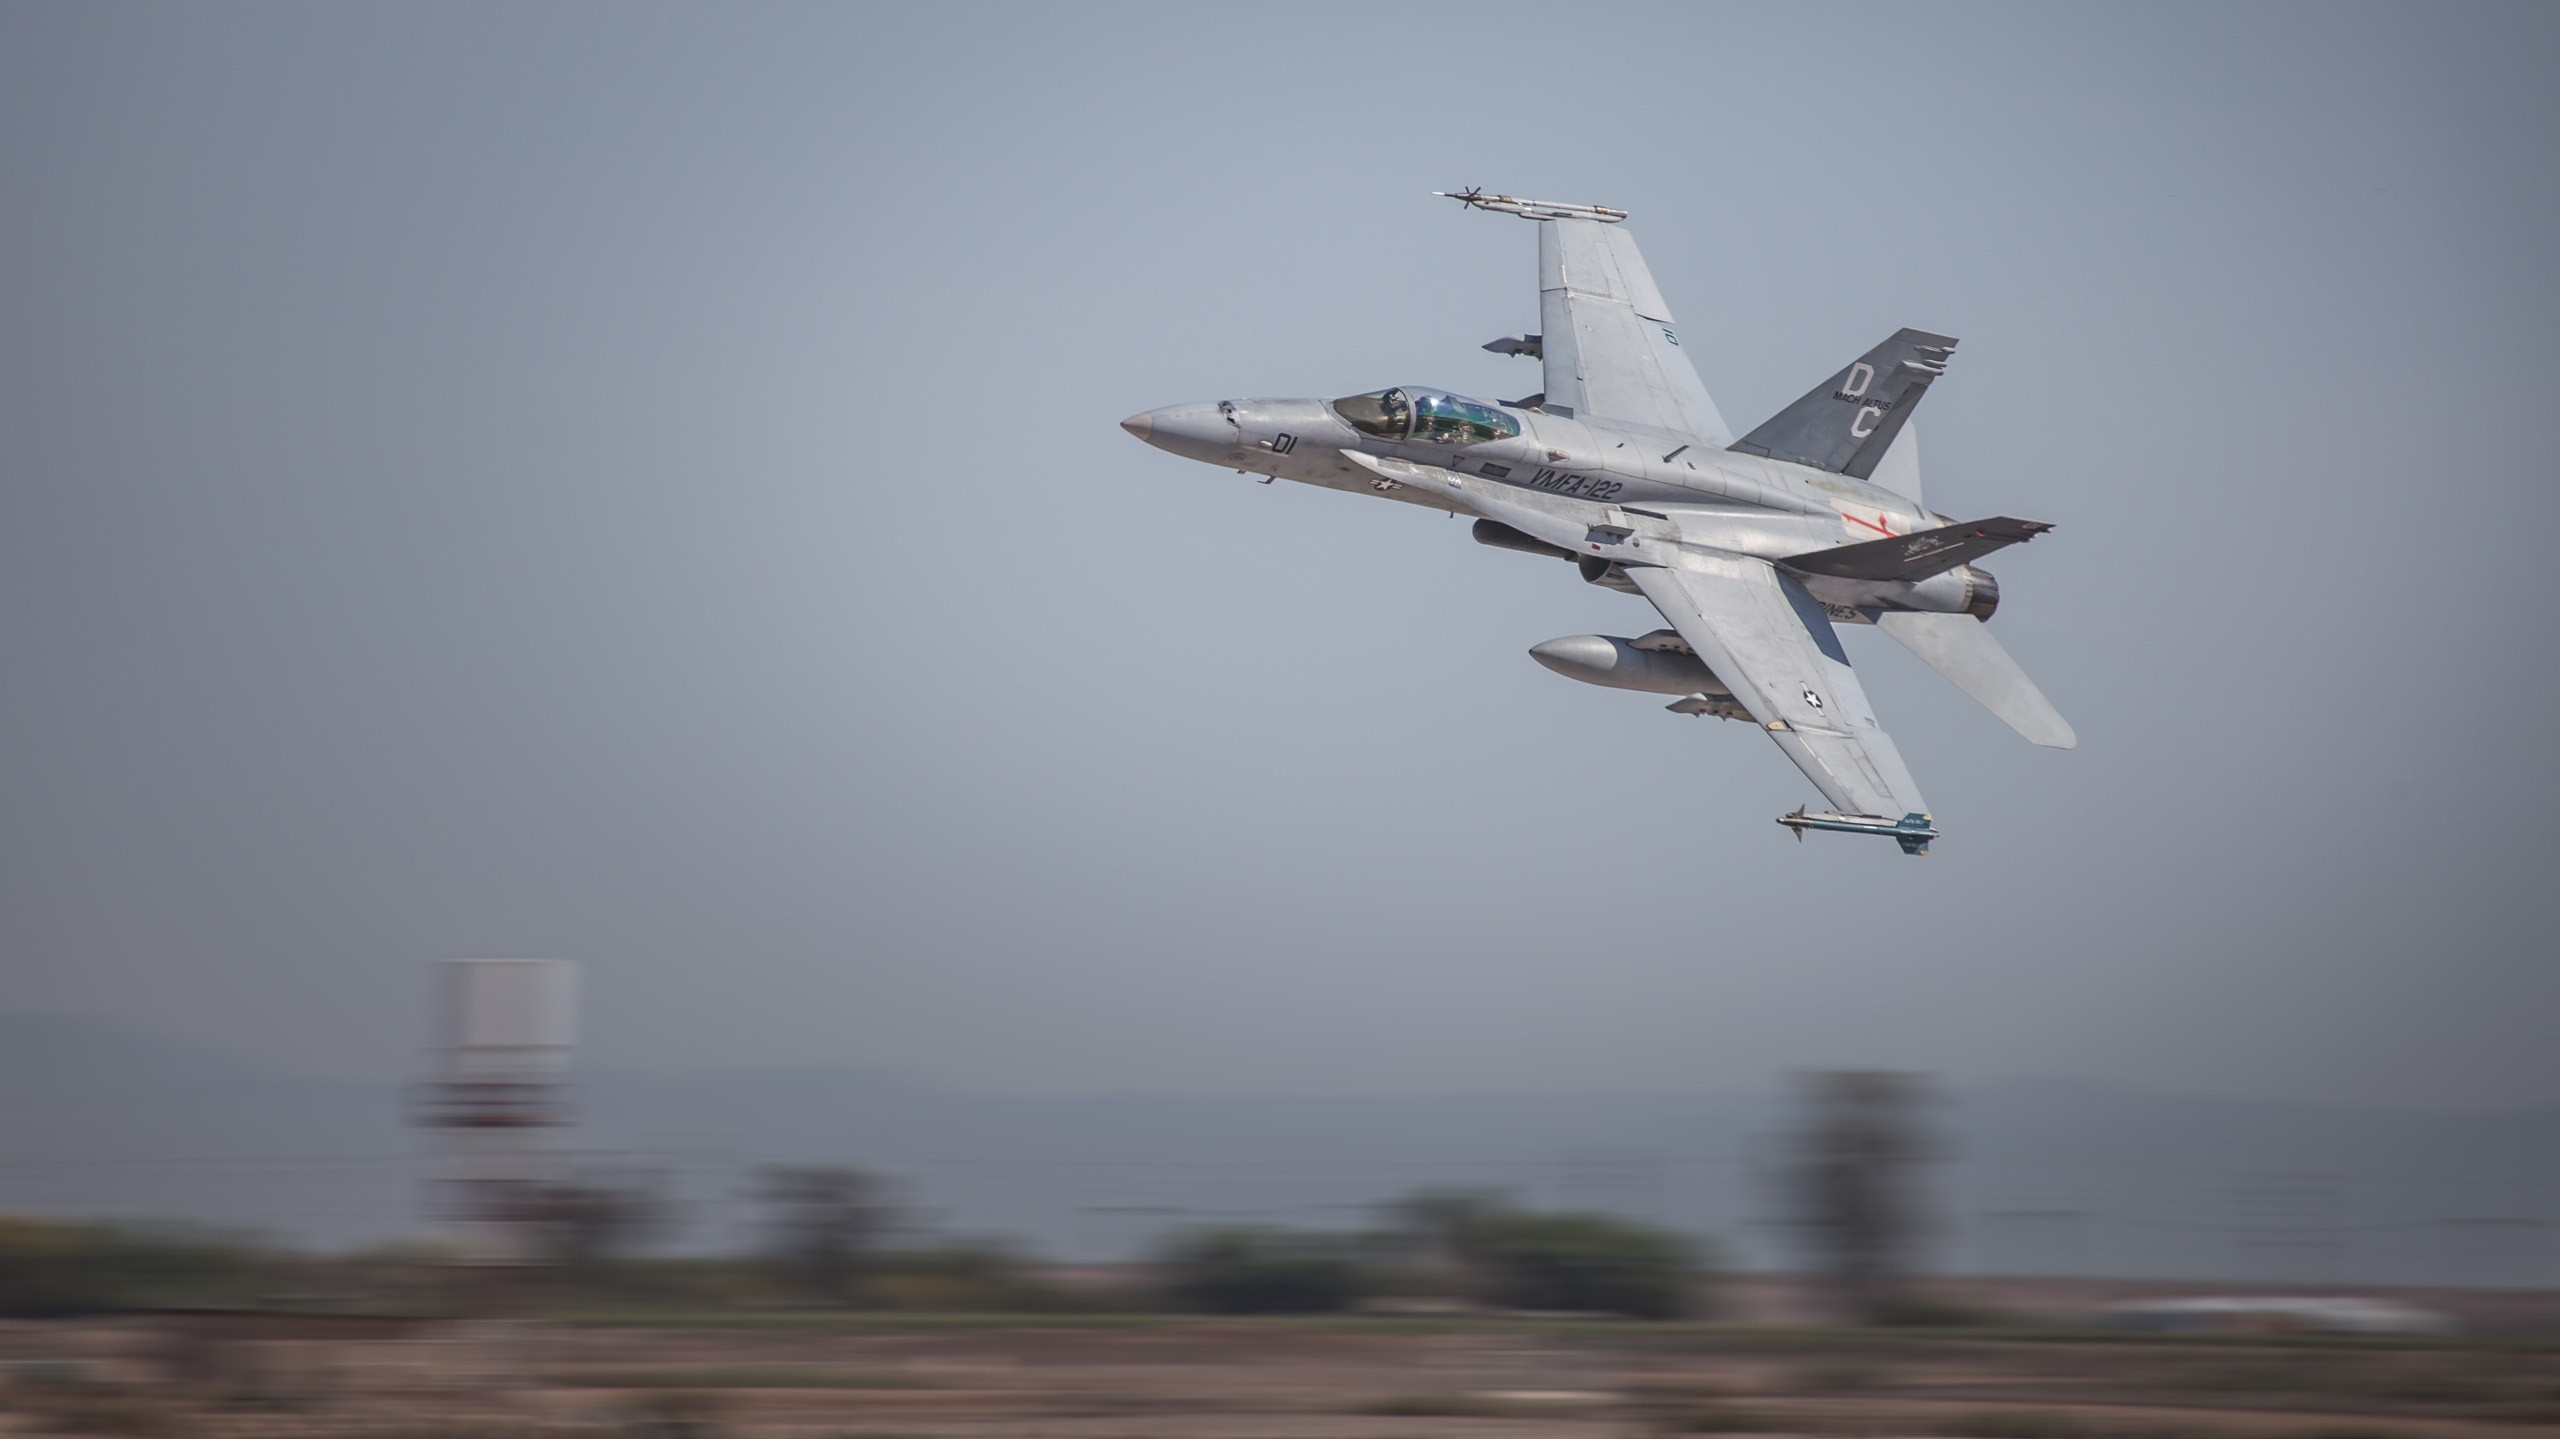 mcdonnell douglas f/a-18 hornet military aircraft military vehicle aircraft